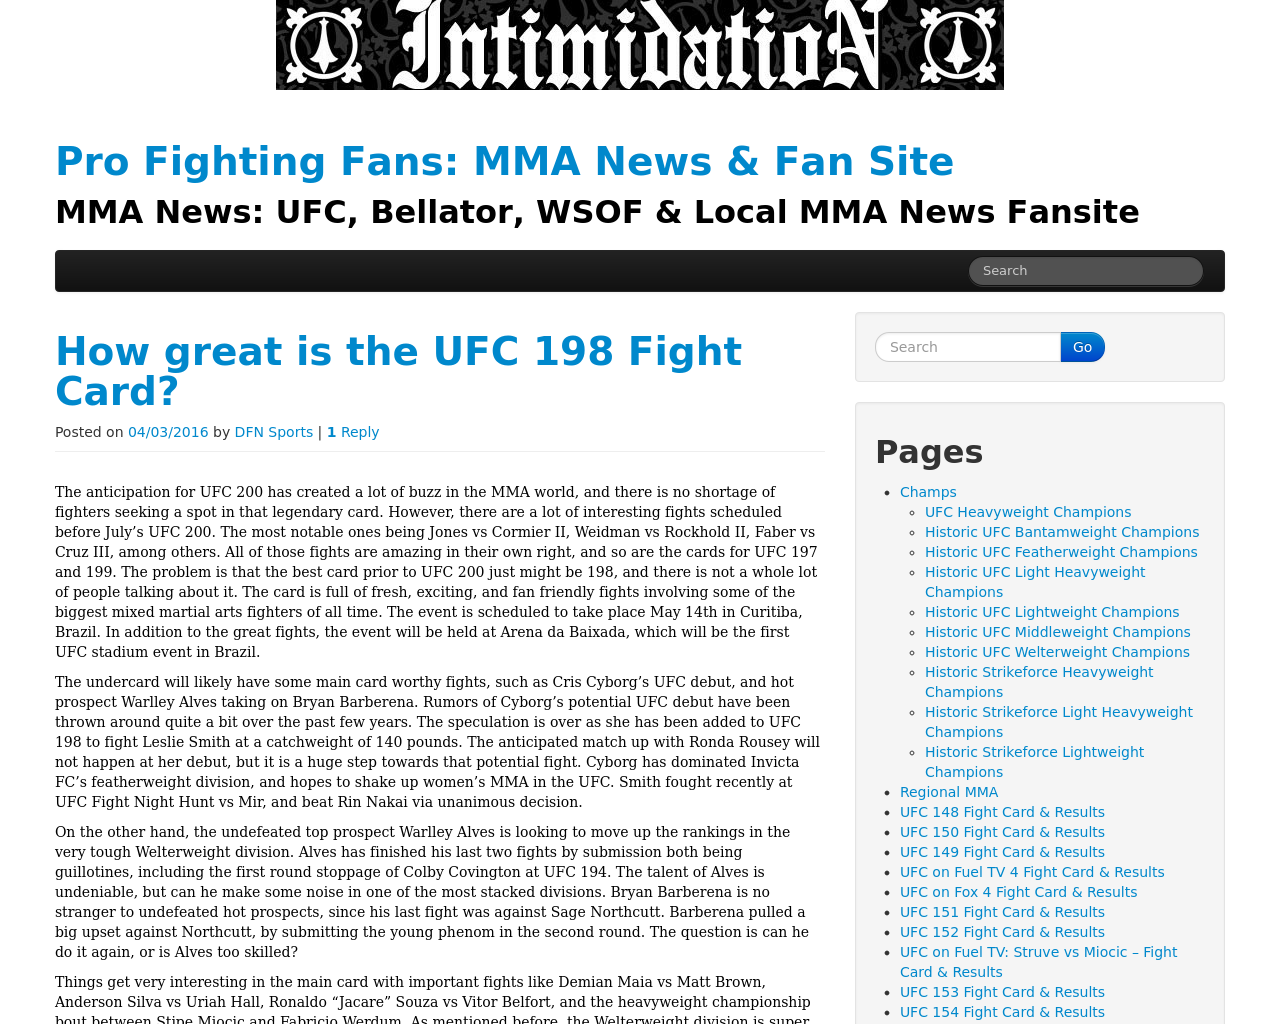 Pro-Fighting-Fans-Advertising-Reviews-Pricing